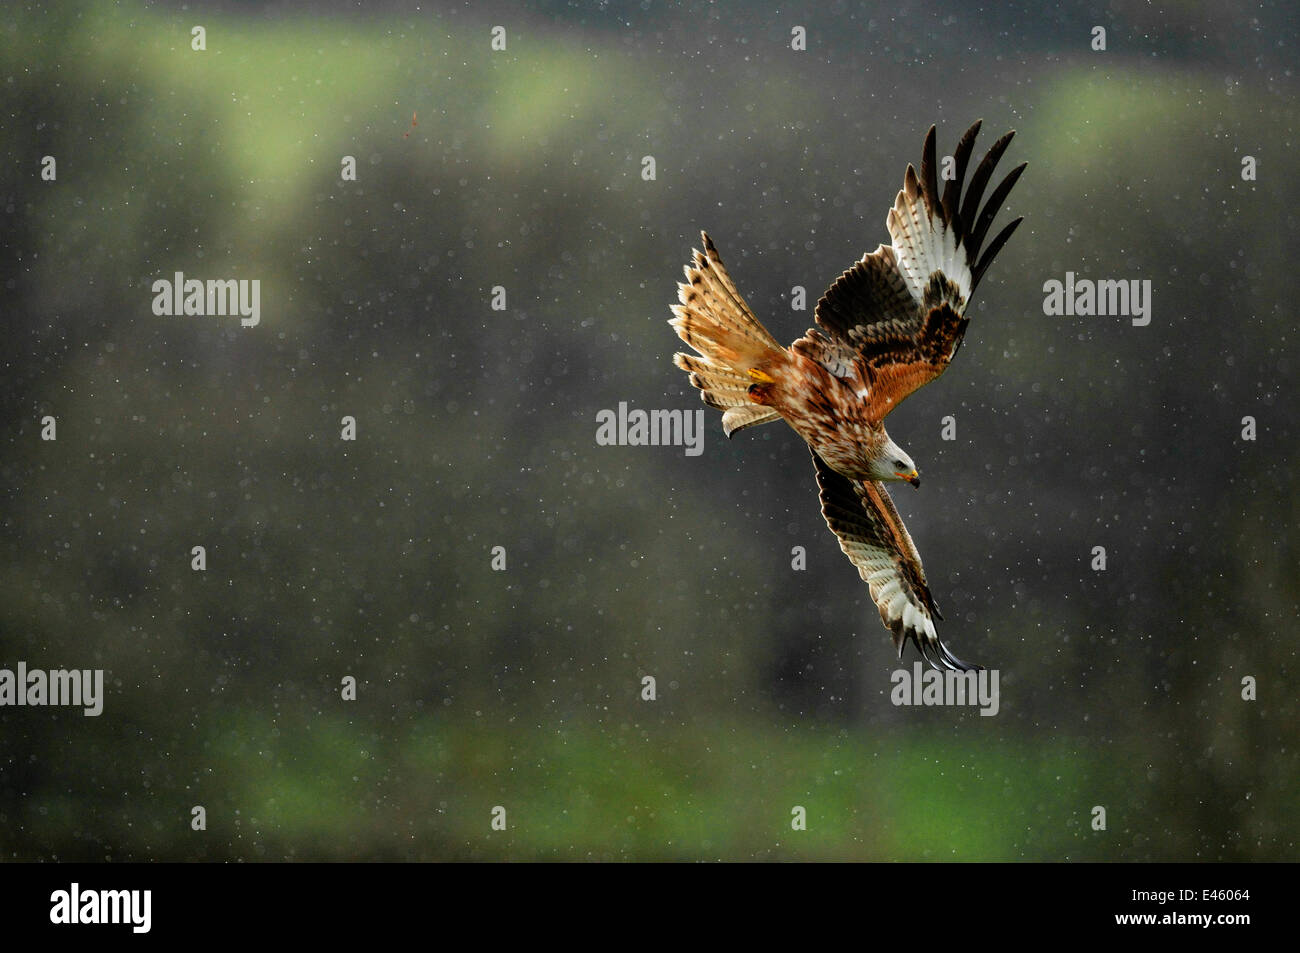 Red kite (Milvus milvus) flying in a rain shower. Dumfries and Galloway, Scotland, June Stock Photo